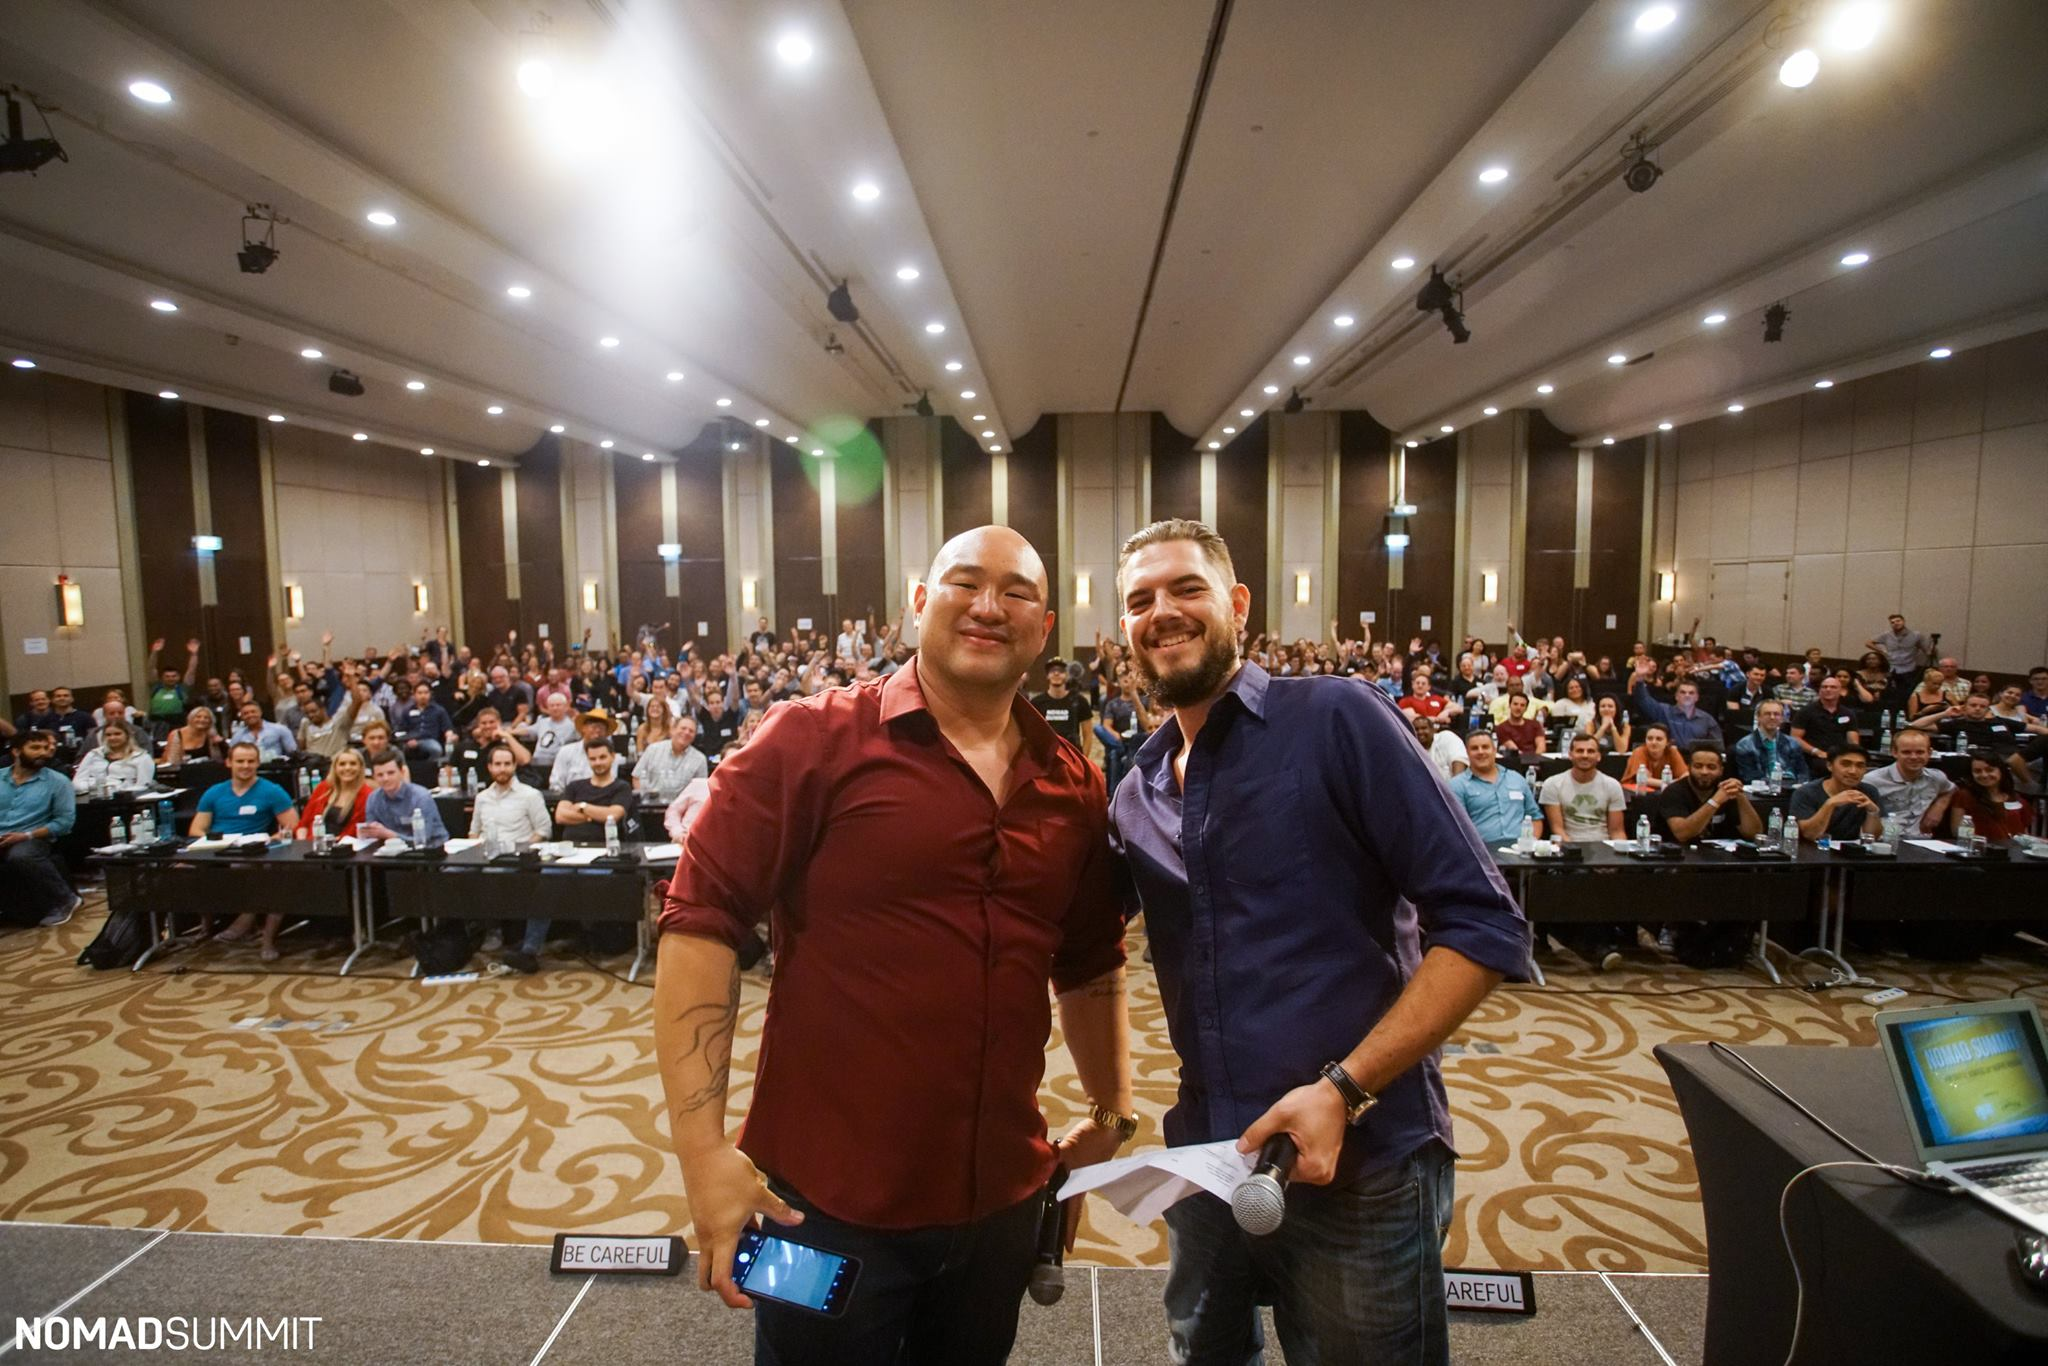 How We Organized an EPIC Conference in Just 3 Weeks